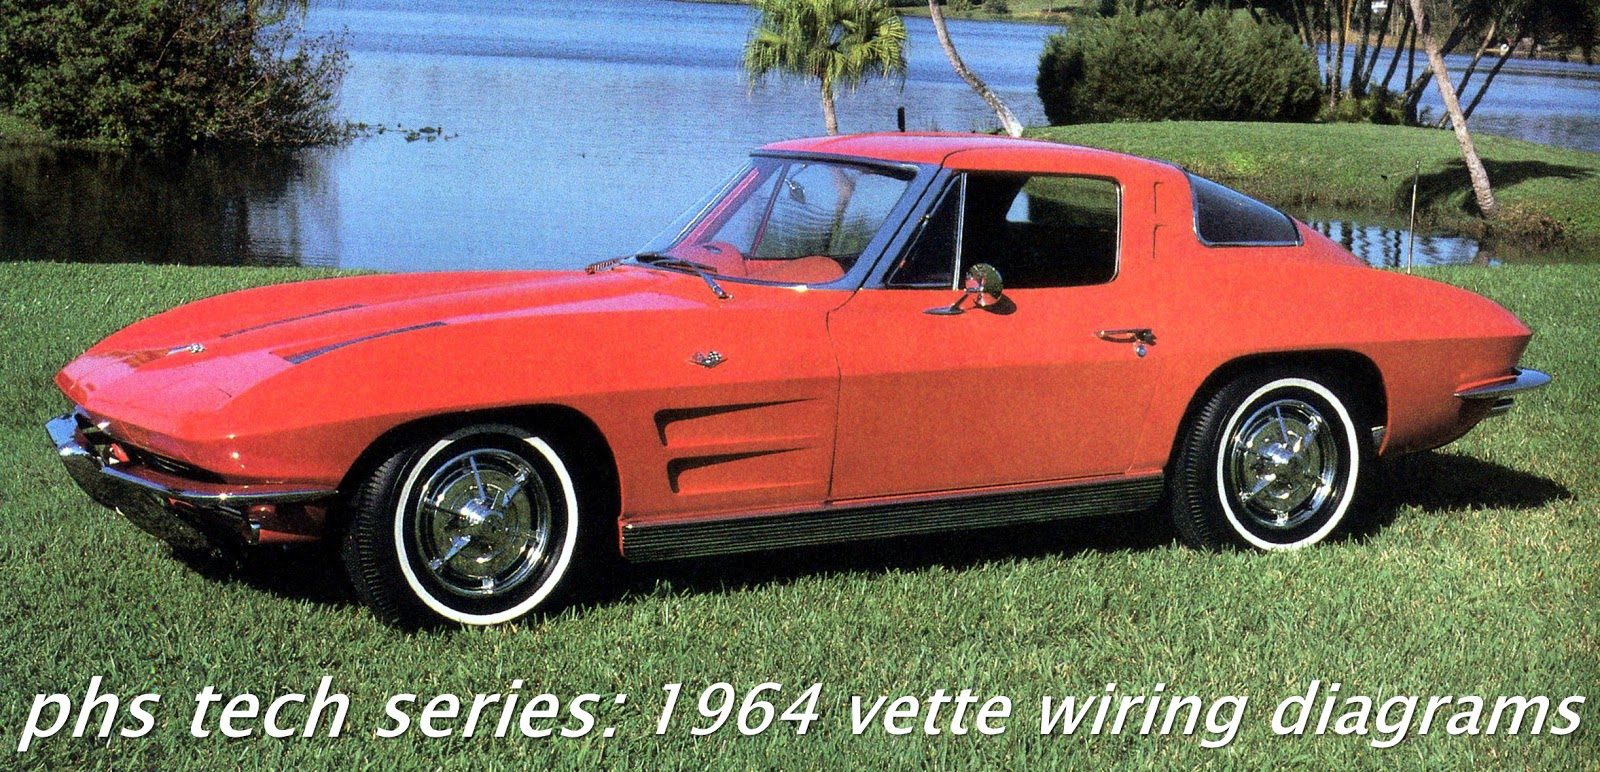 on older performance cars such as the mid year sharks, wiring is often  absent, awol or fubar especially if they were drag cars or un restored  vehicles and